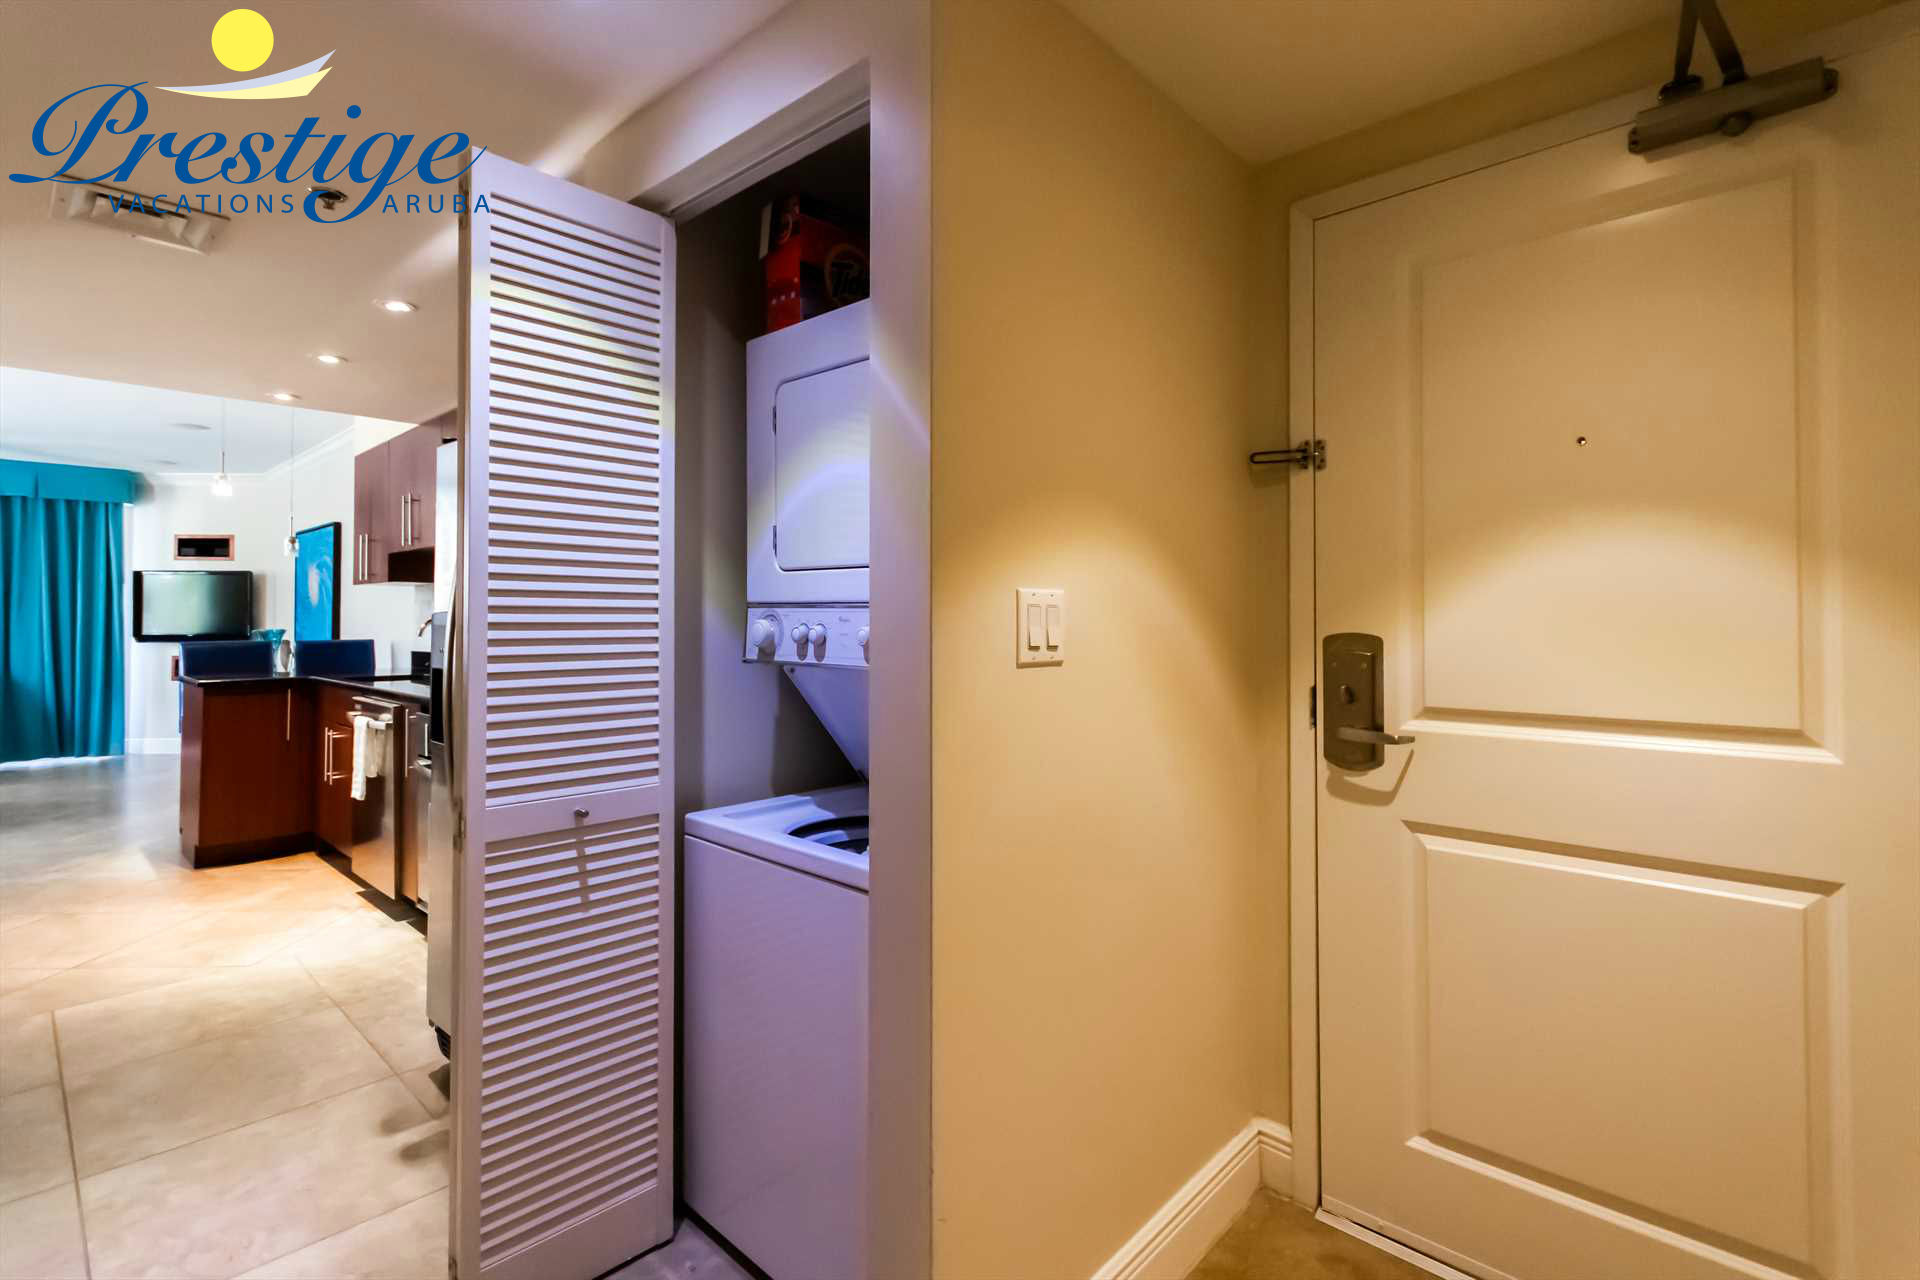 Condo entrance and the in-room washer/dryer closet